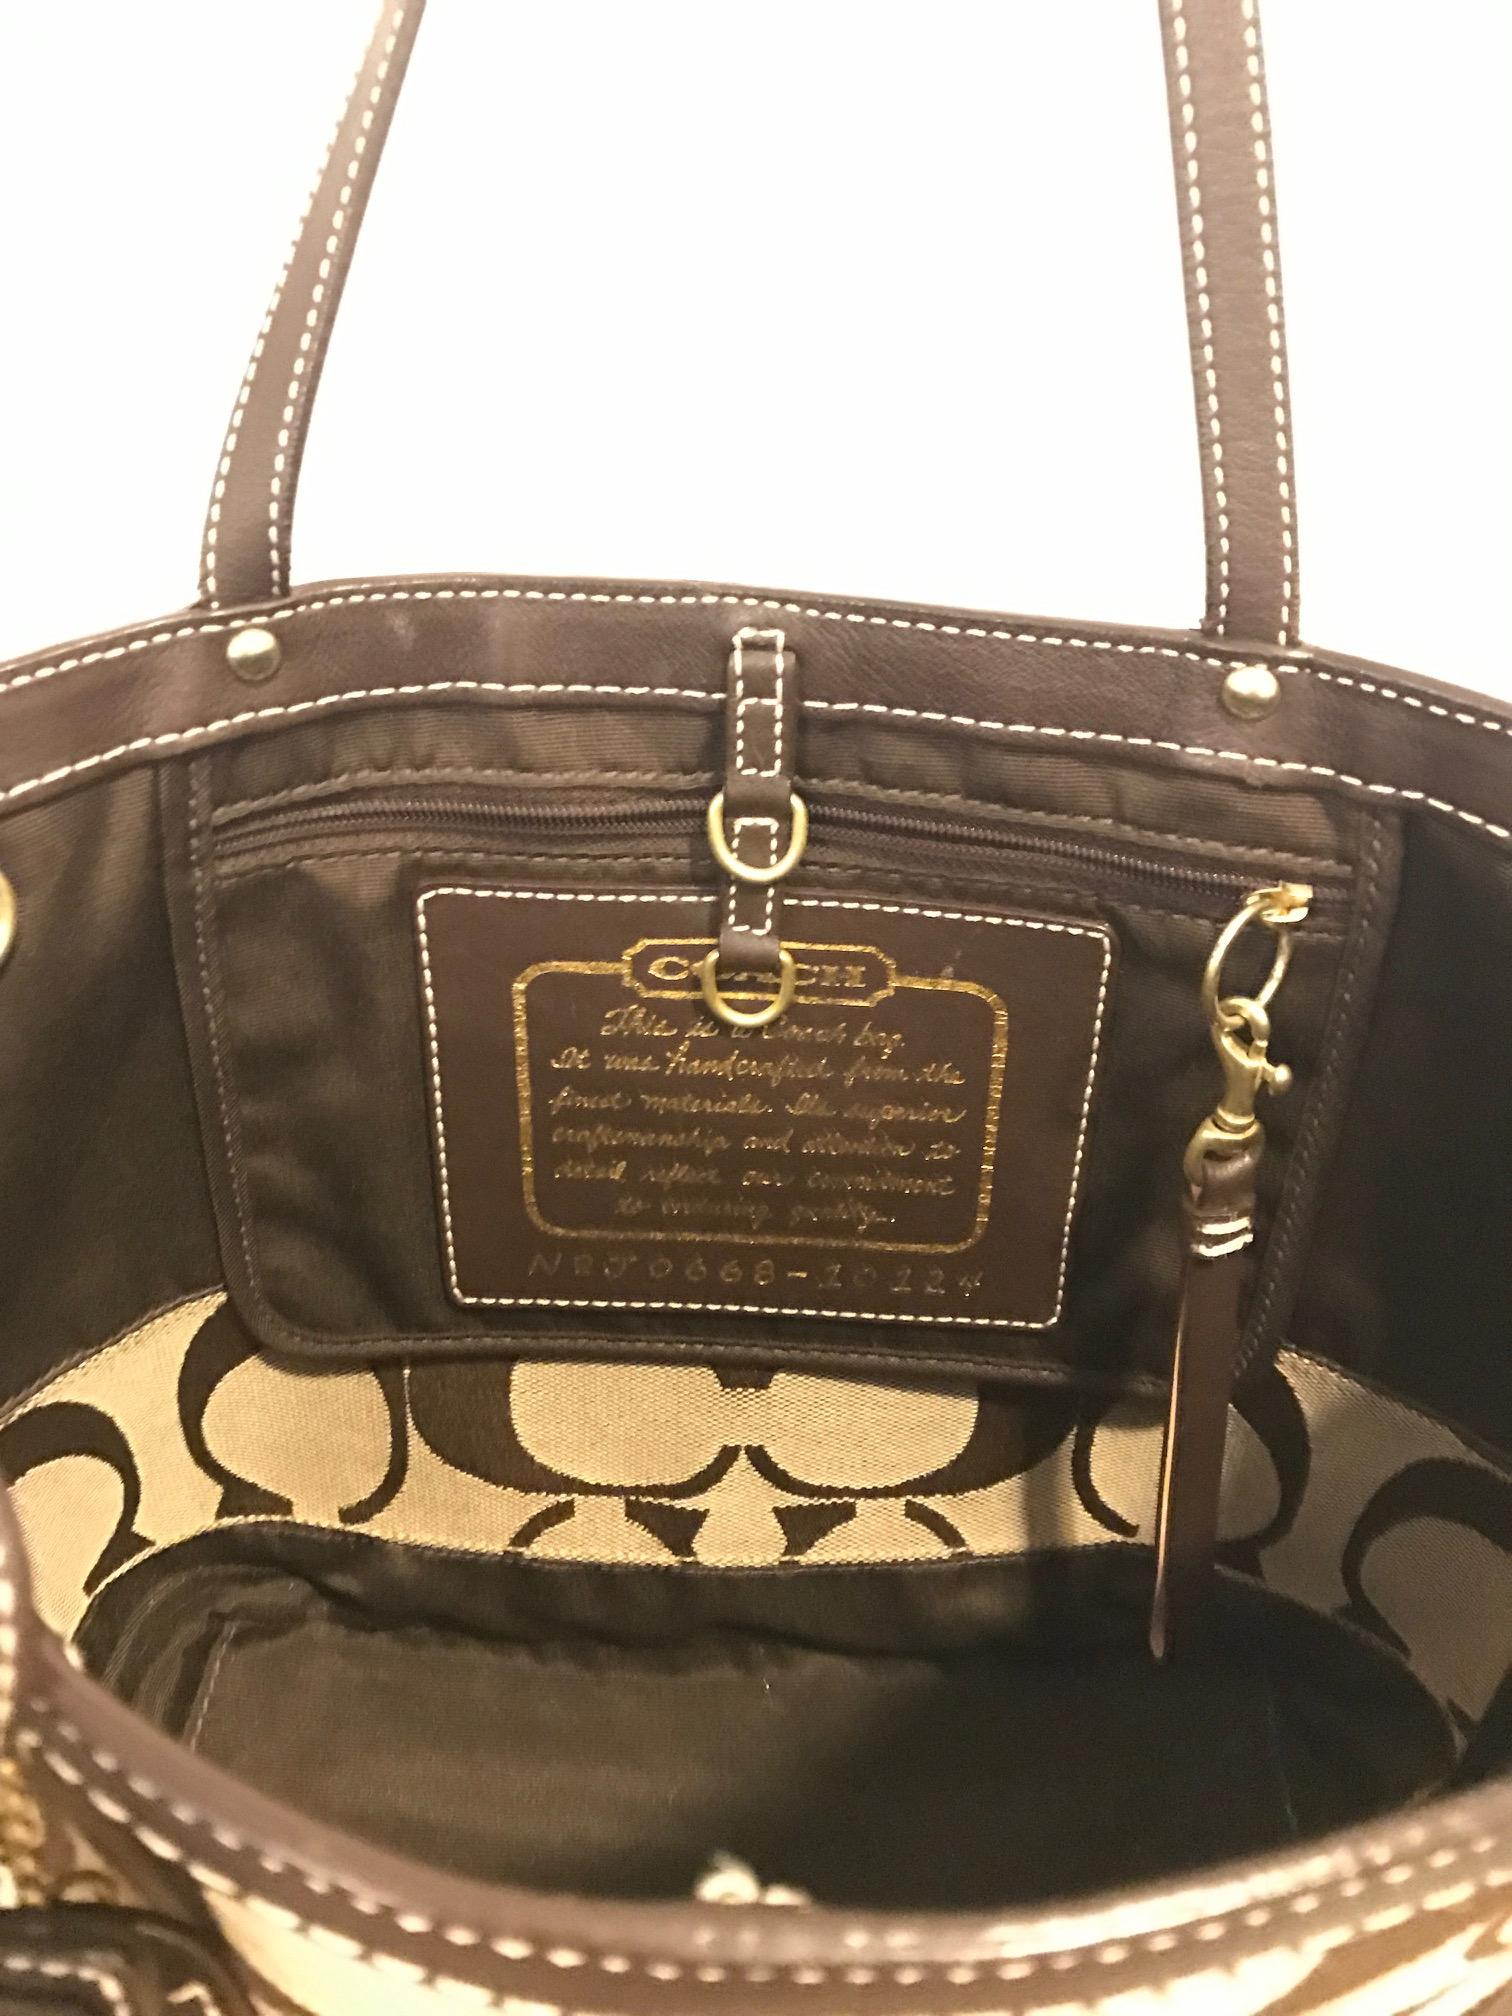 coach classic tote bag kit rh familycivilrights org